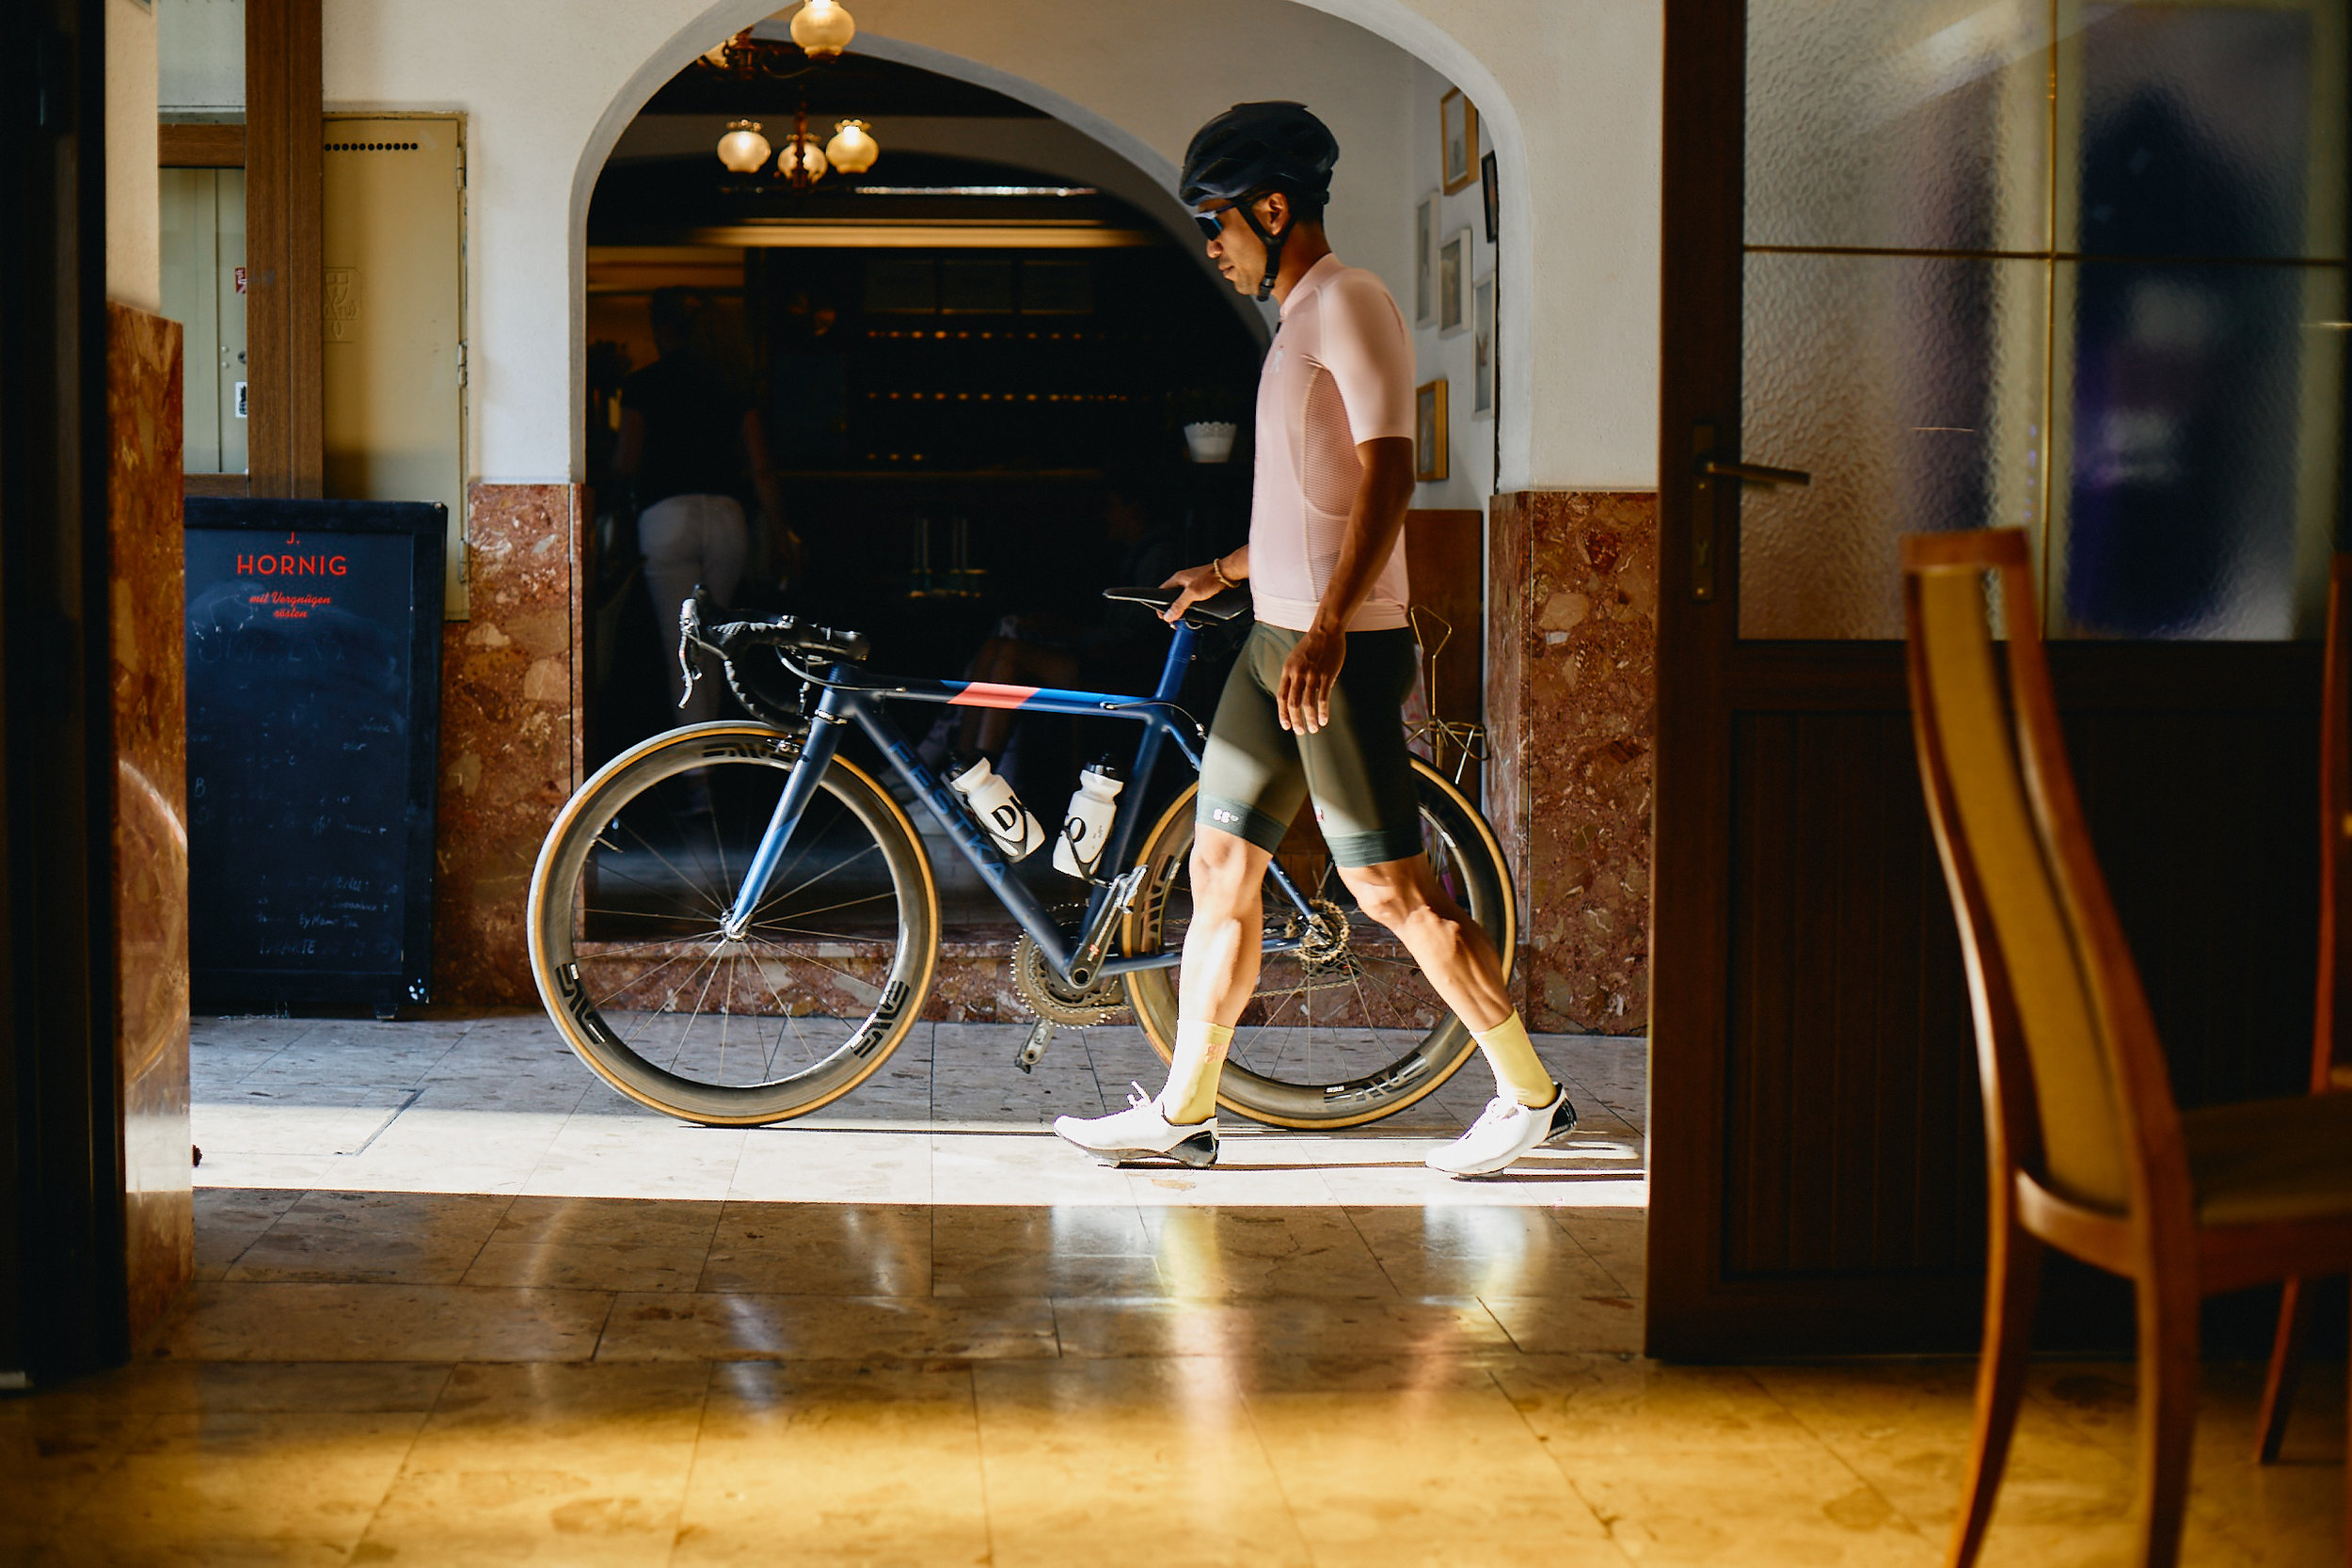 Guests are encouraged to explore Vienna by bike